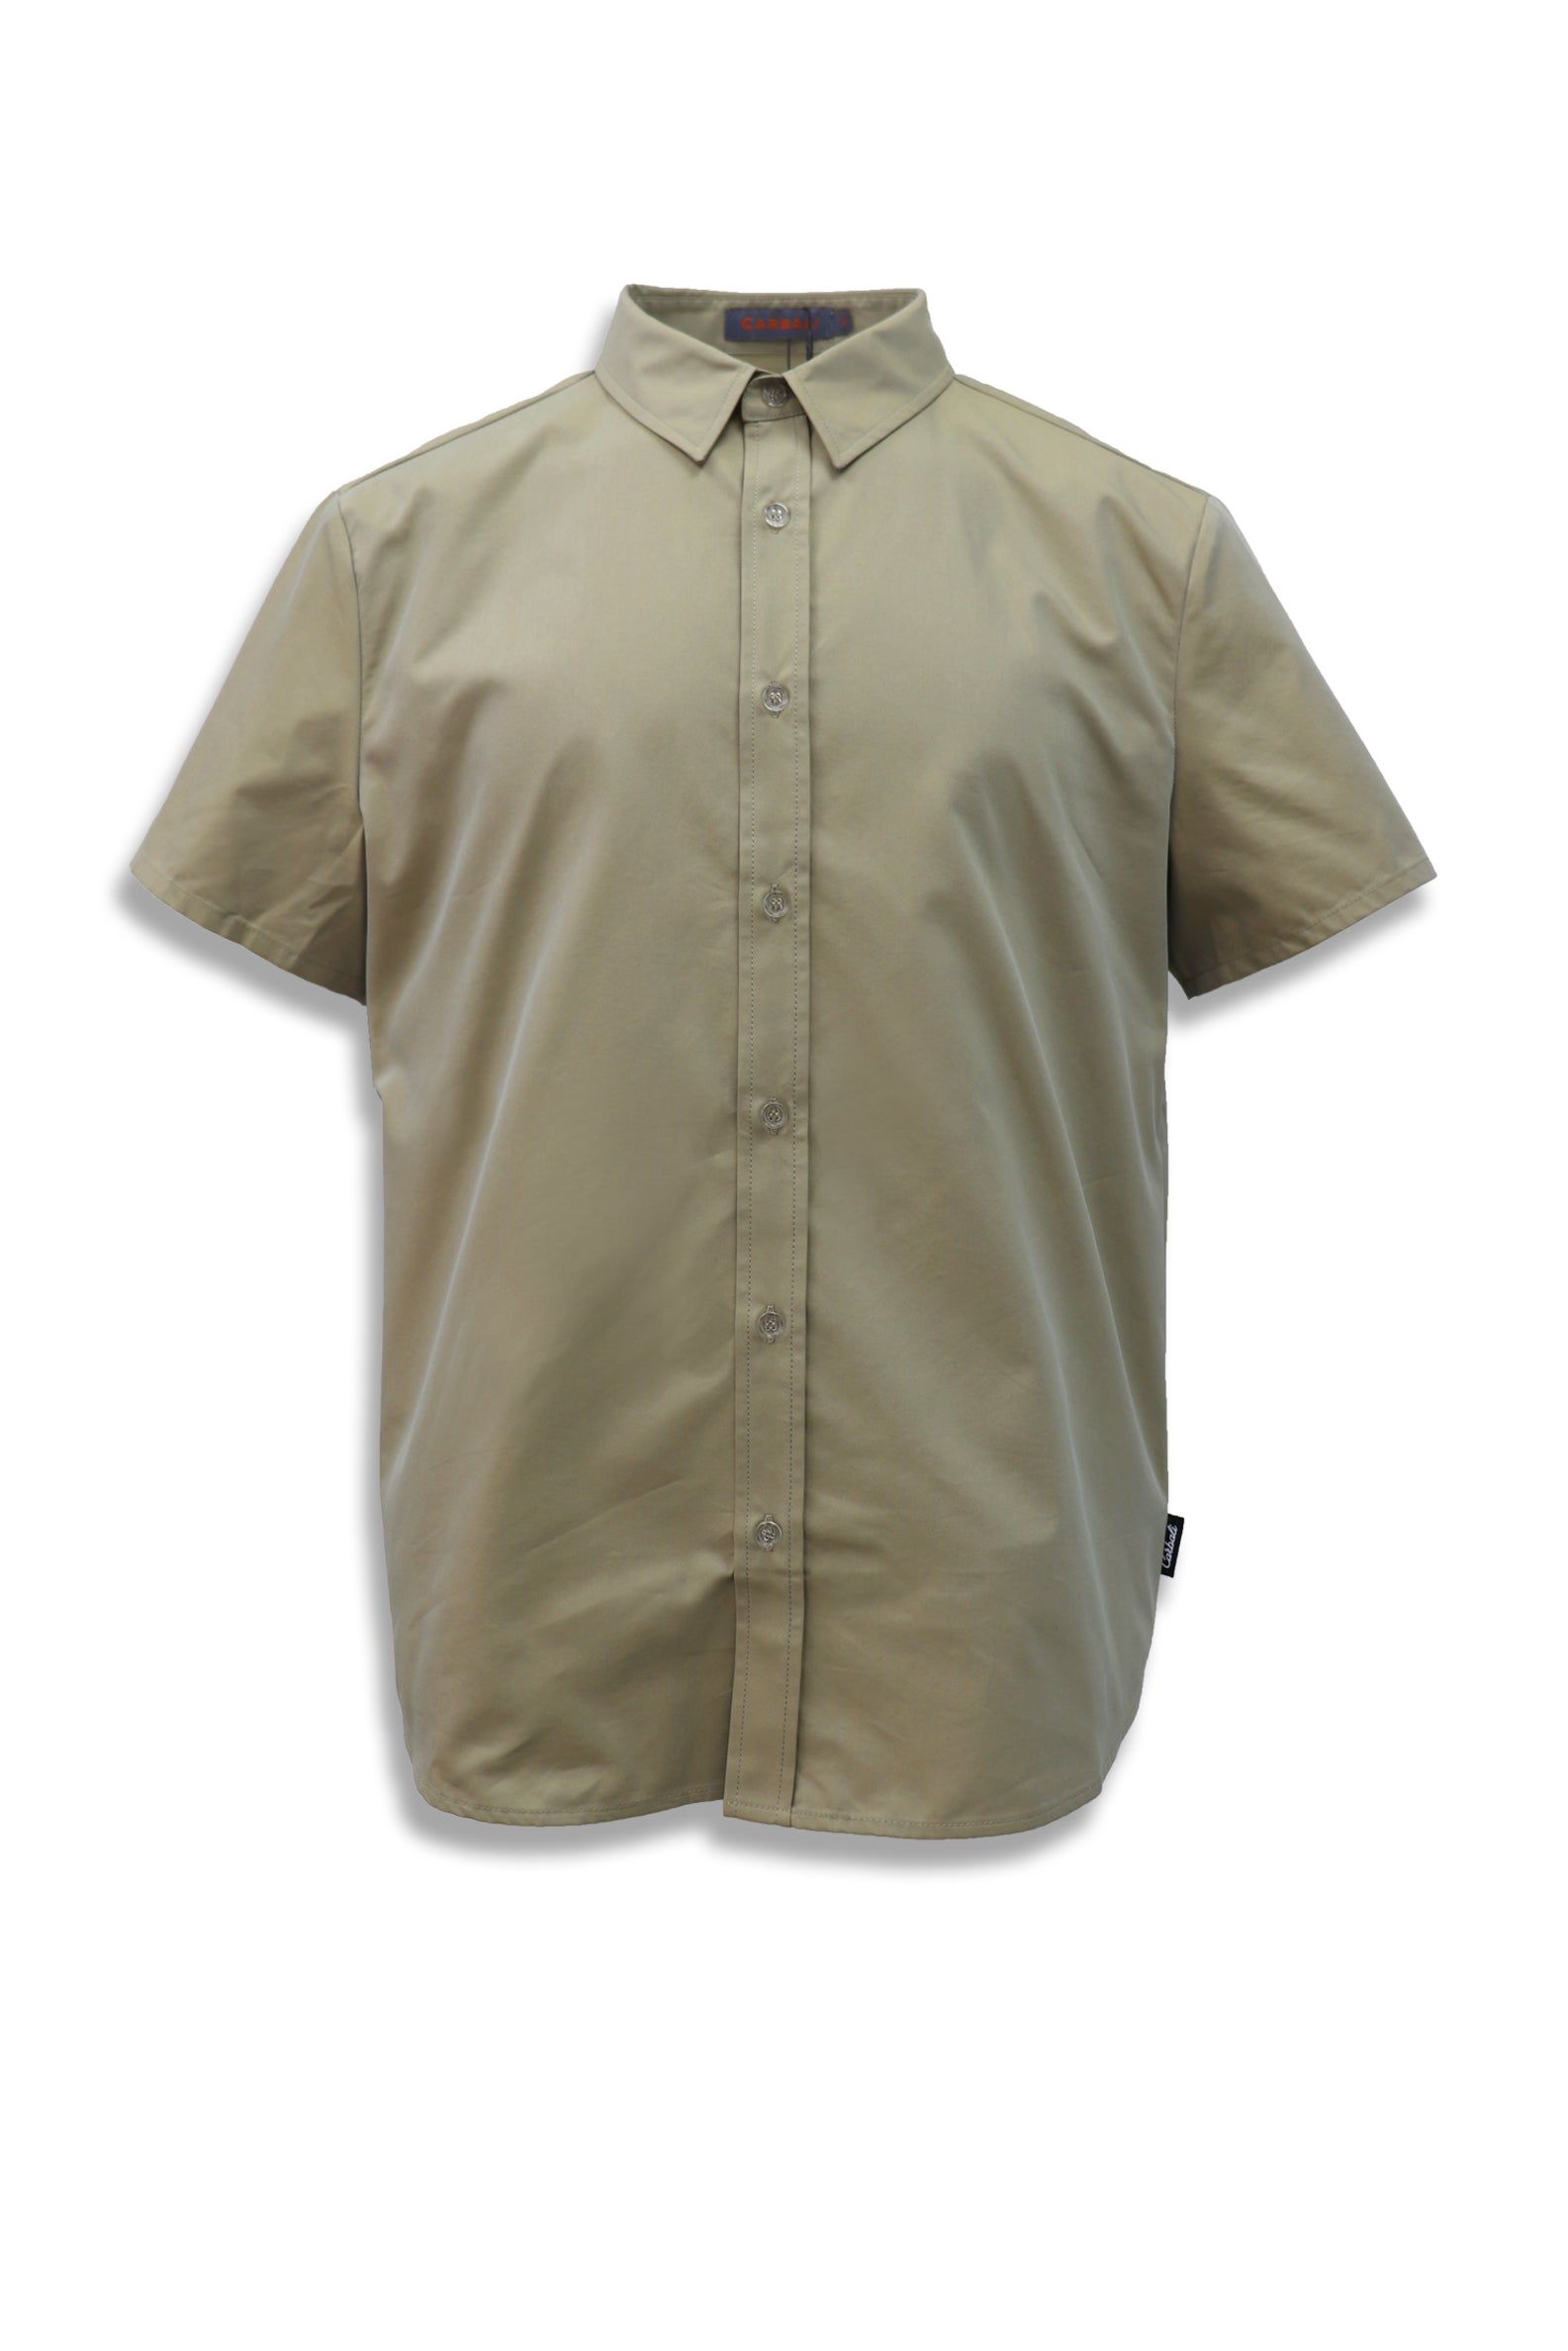 Carbali Short Sleeve Work Shirt in Khaki